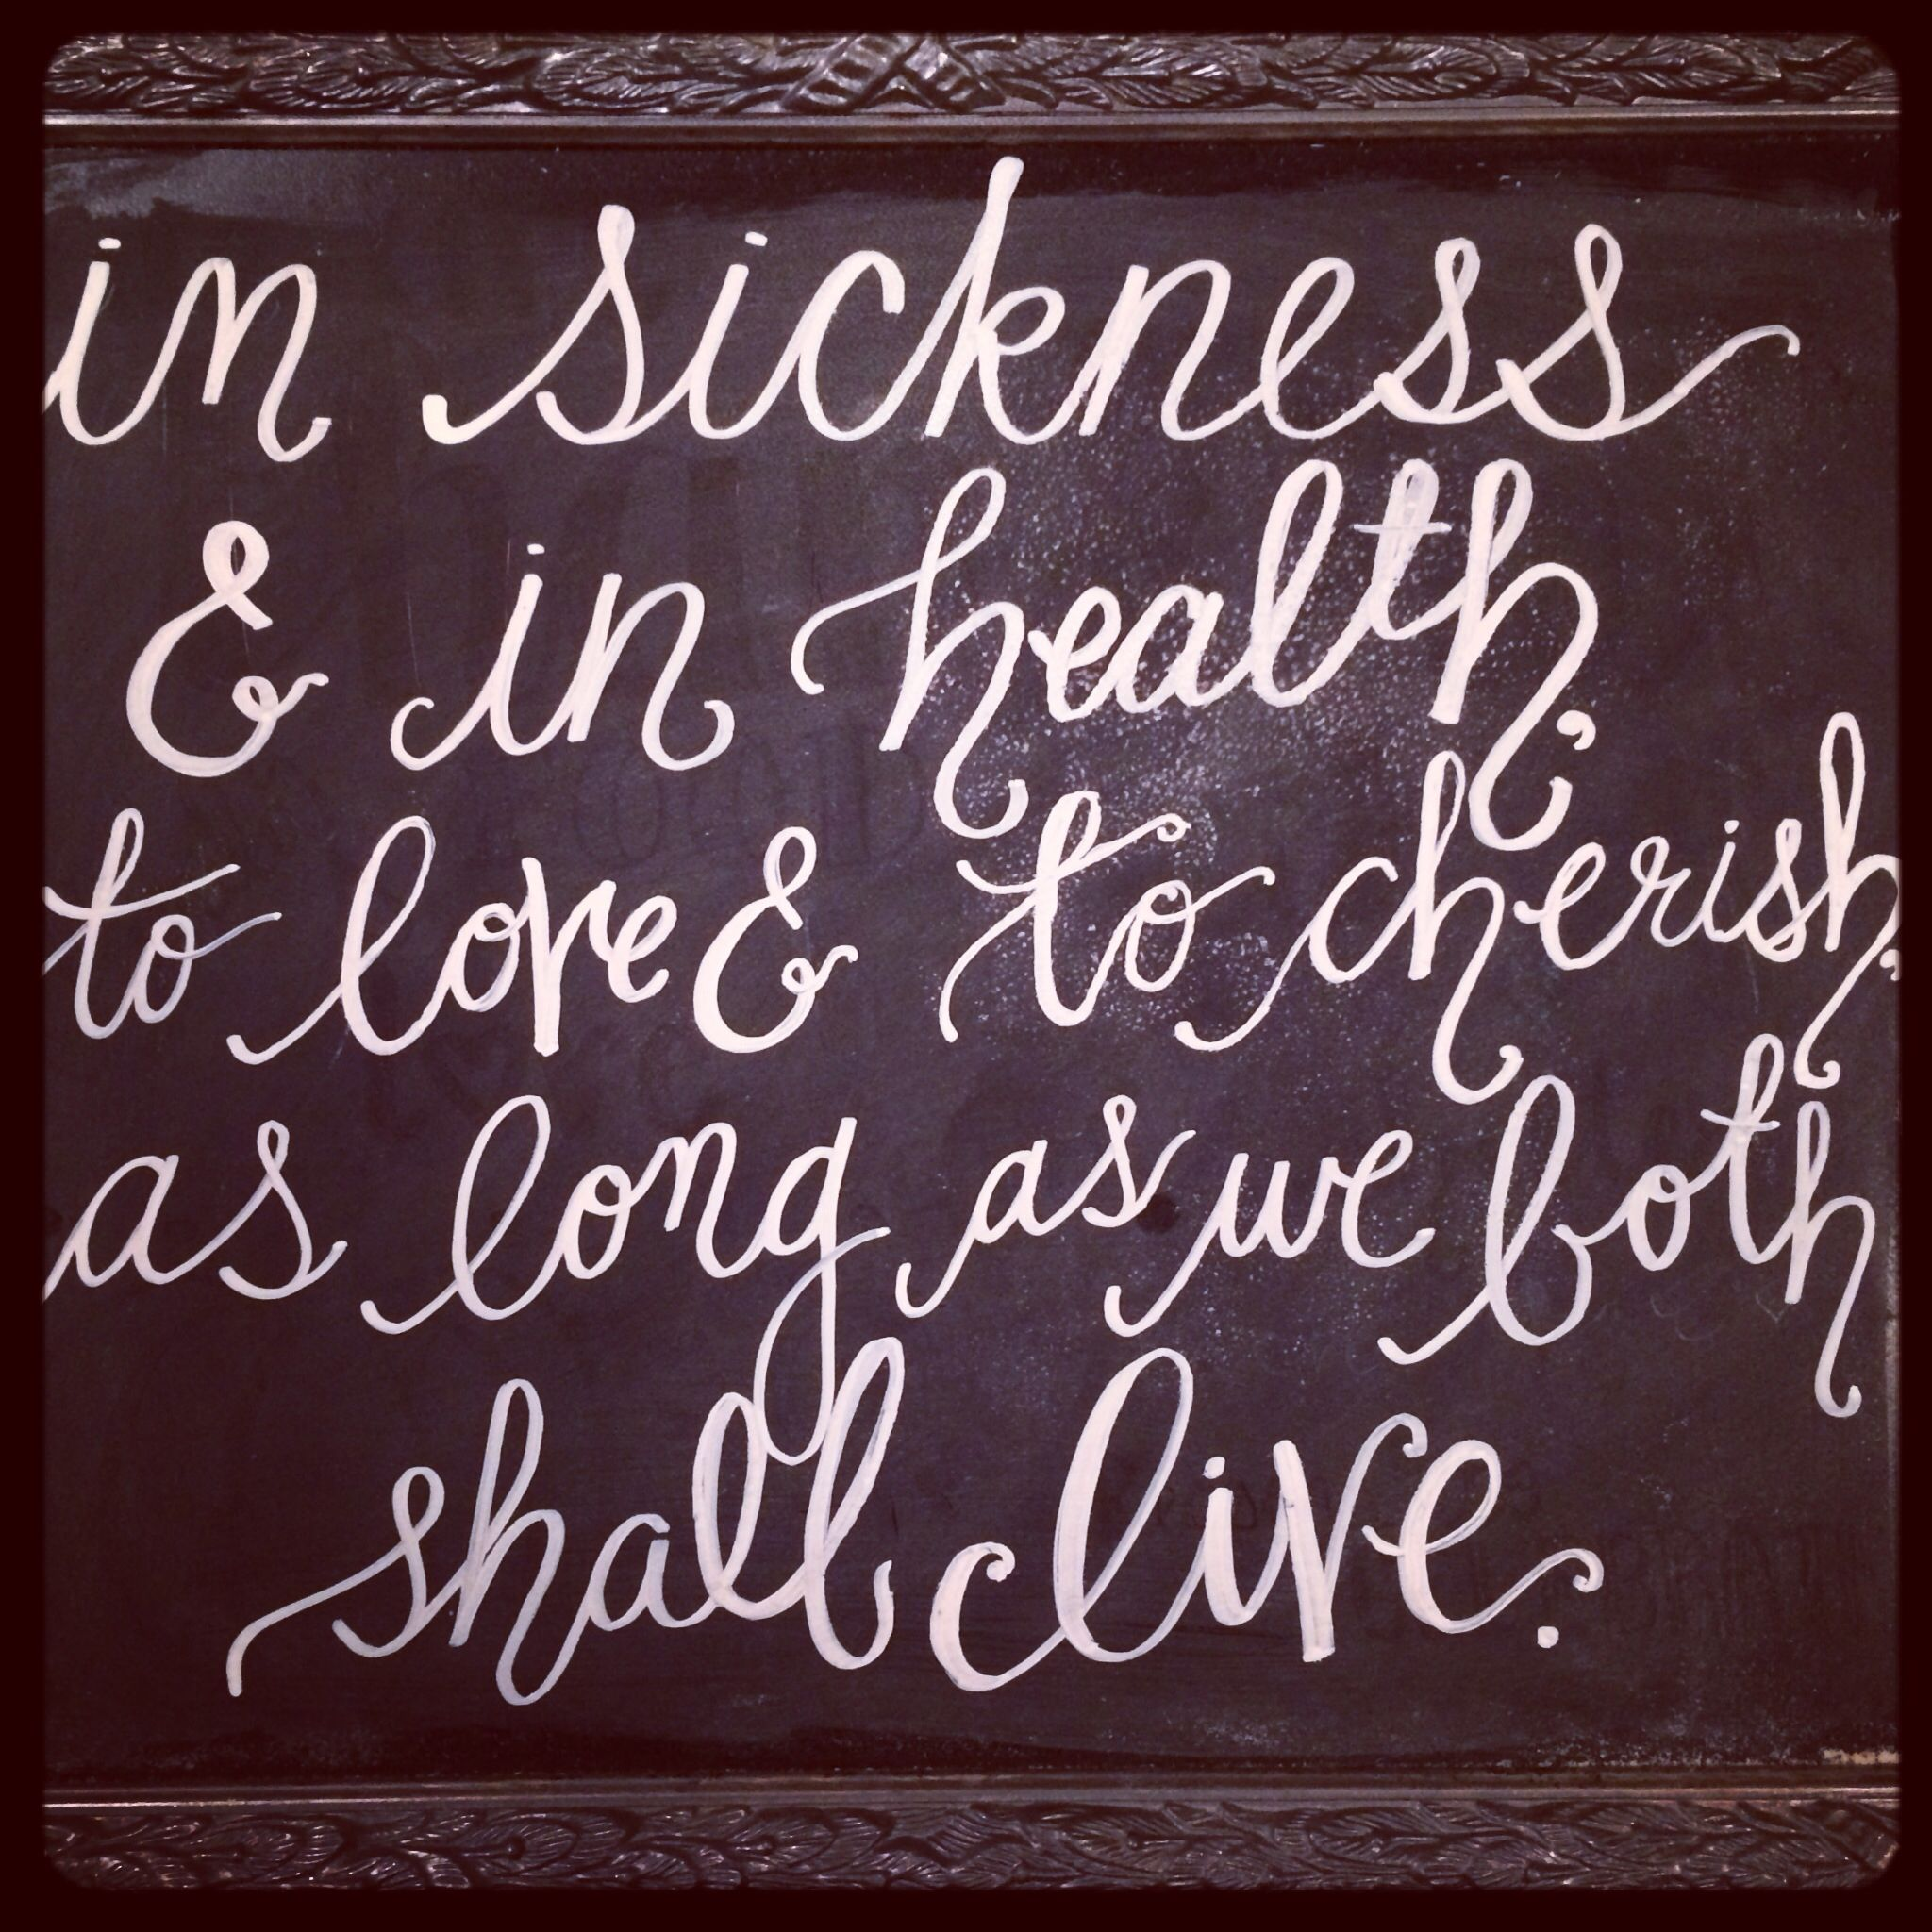 Calligraphy Hand Lettering Chalkboard Art Wedding Vows In Sickness And In Health To Love And To Cherish As Chalkboard Art Wedding Chalkboard Art Old Letters